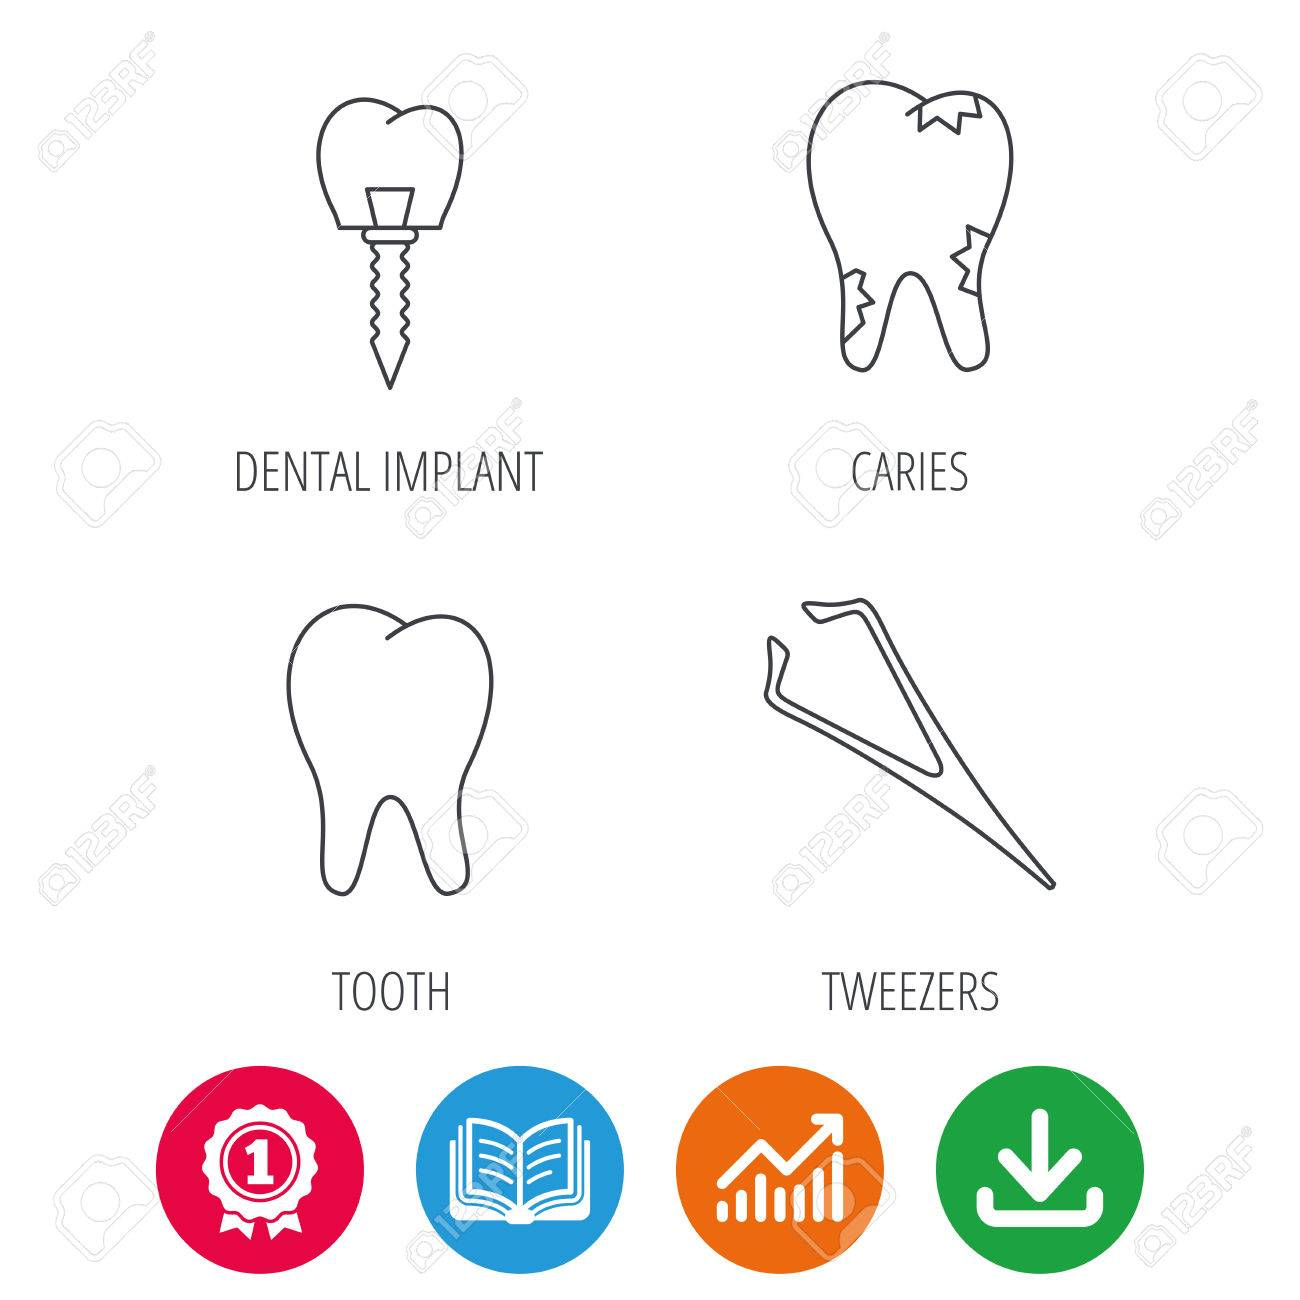 Dental Implant Caries And Tooth Icons Tweezers Linear Sign